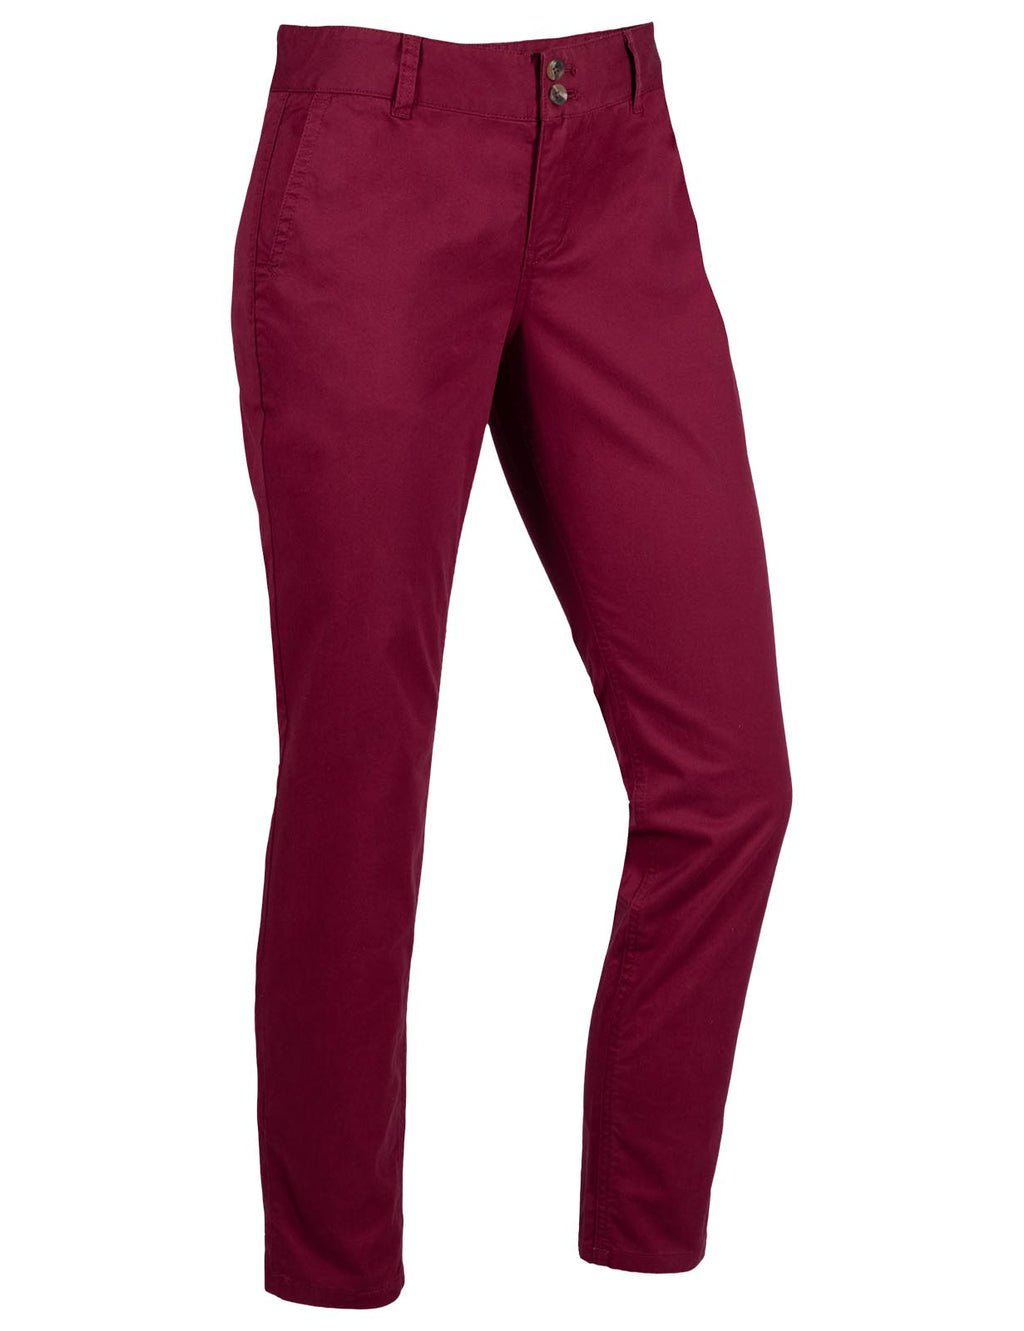 Women's Sadie Skinny Chino Pant | Parent